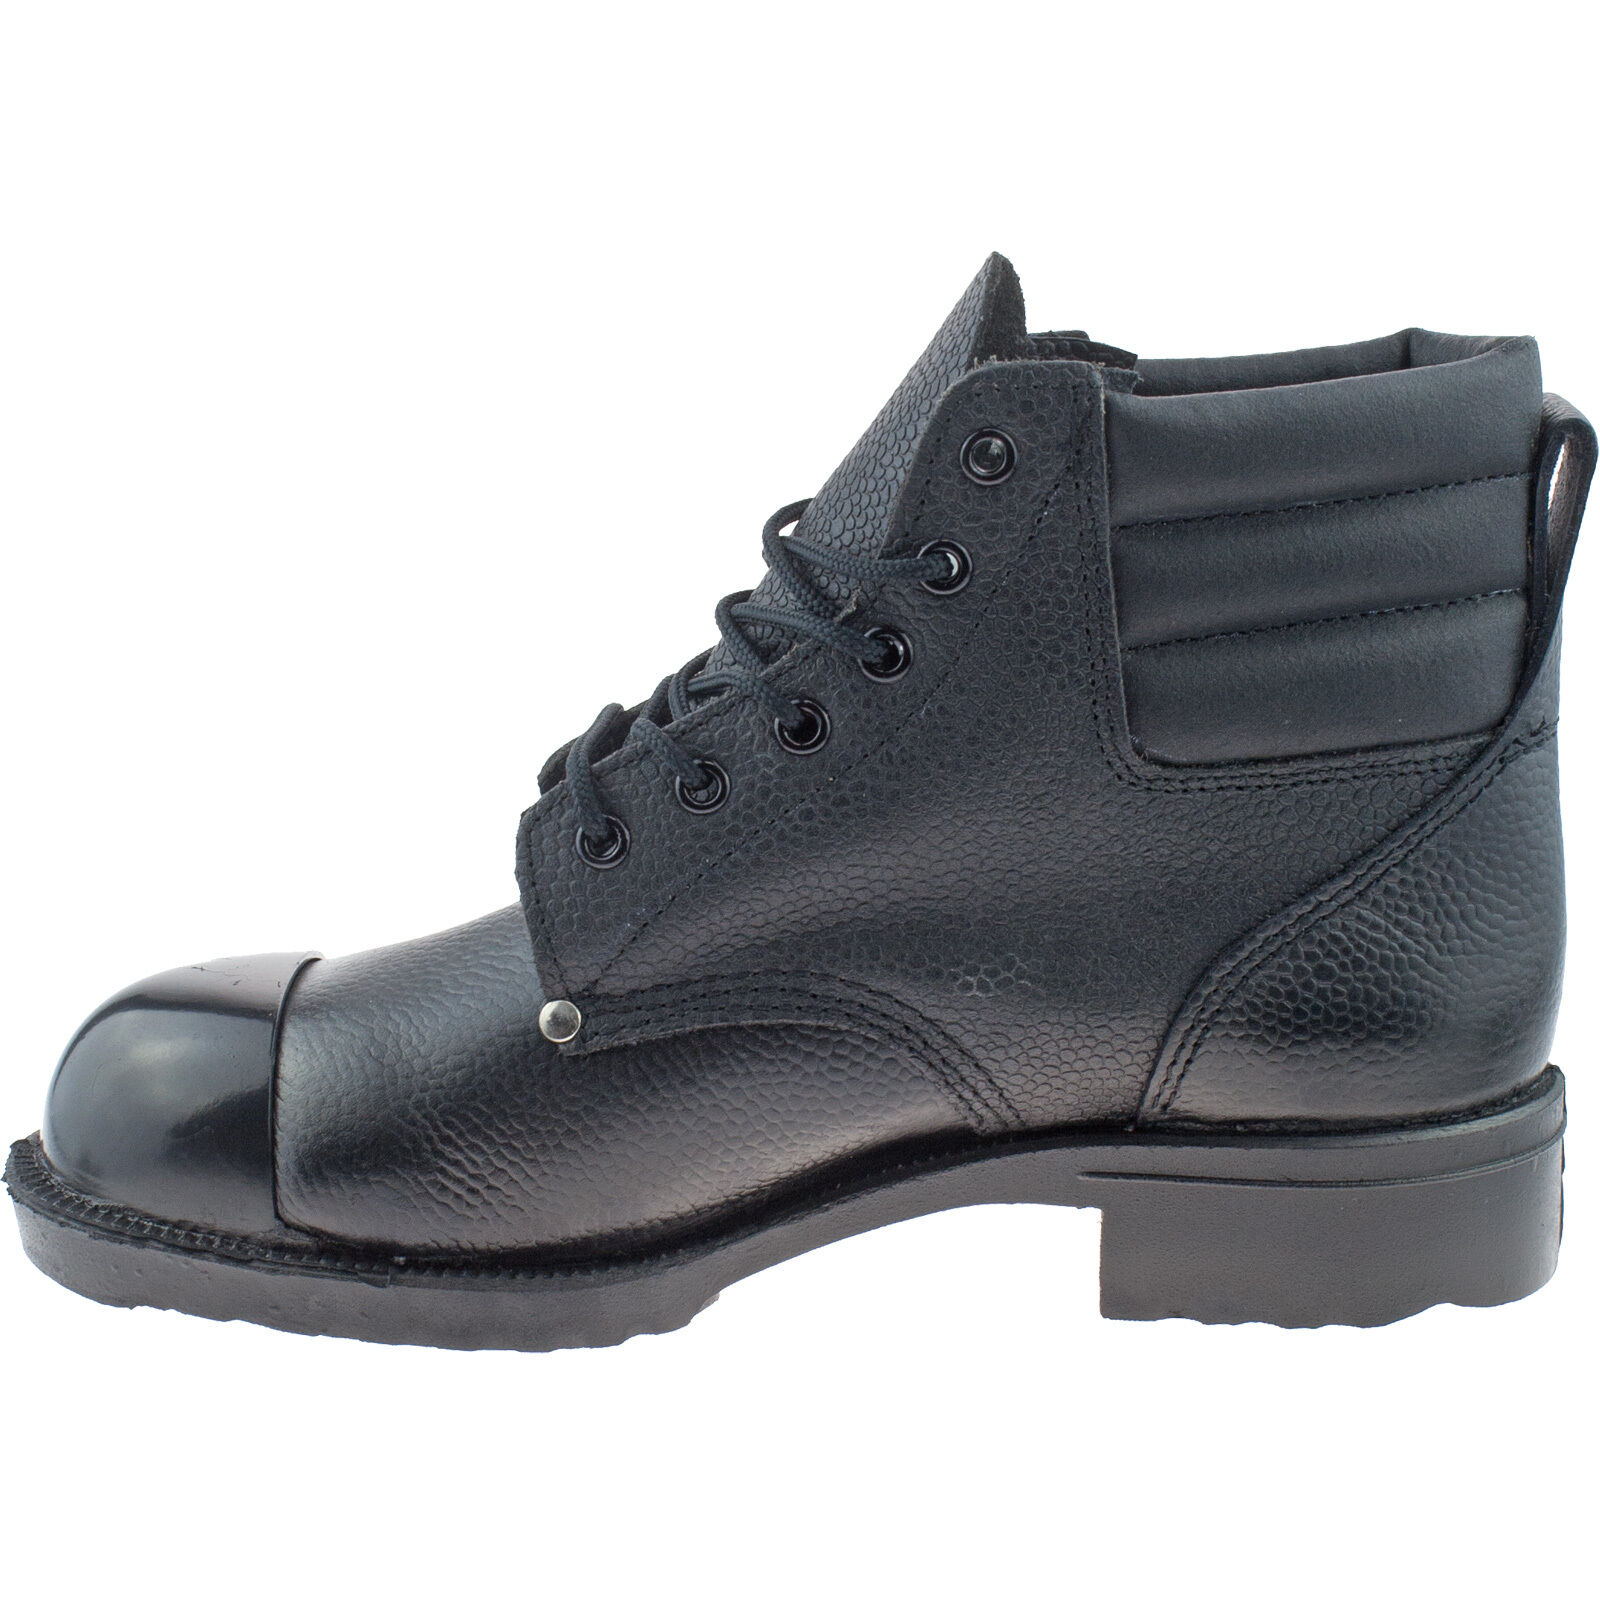 f832596fc6d MENS GRAFTERS COMBAT CADET BOOTS SIZE UK 3-15 TACTICAL BLACK LEATHER M671A  KD Herrenschuhe